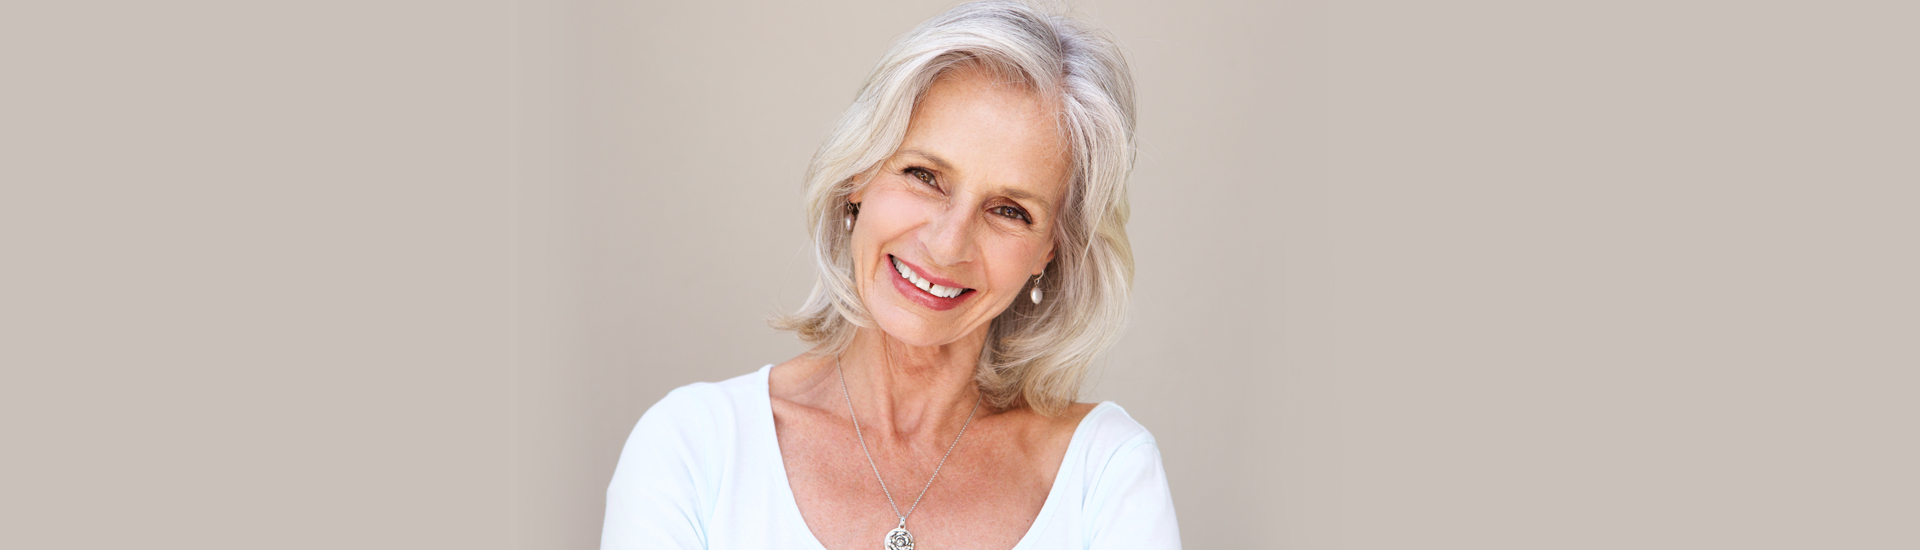 Do You Need a New Smile? Your Guide to a Smile Makeover